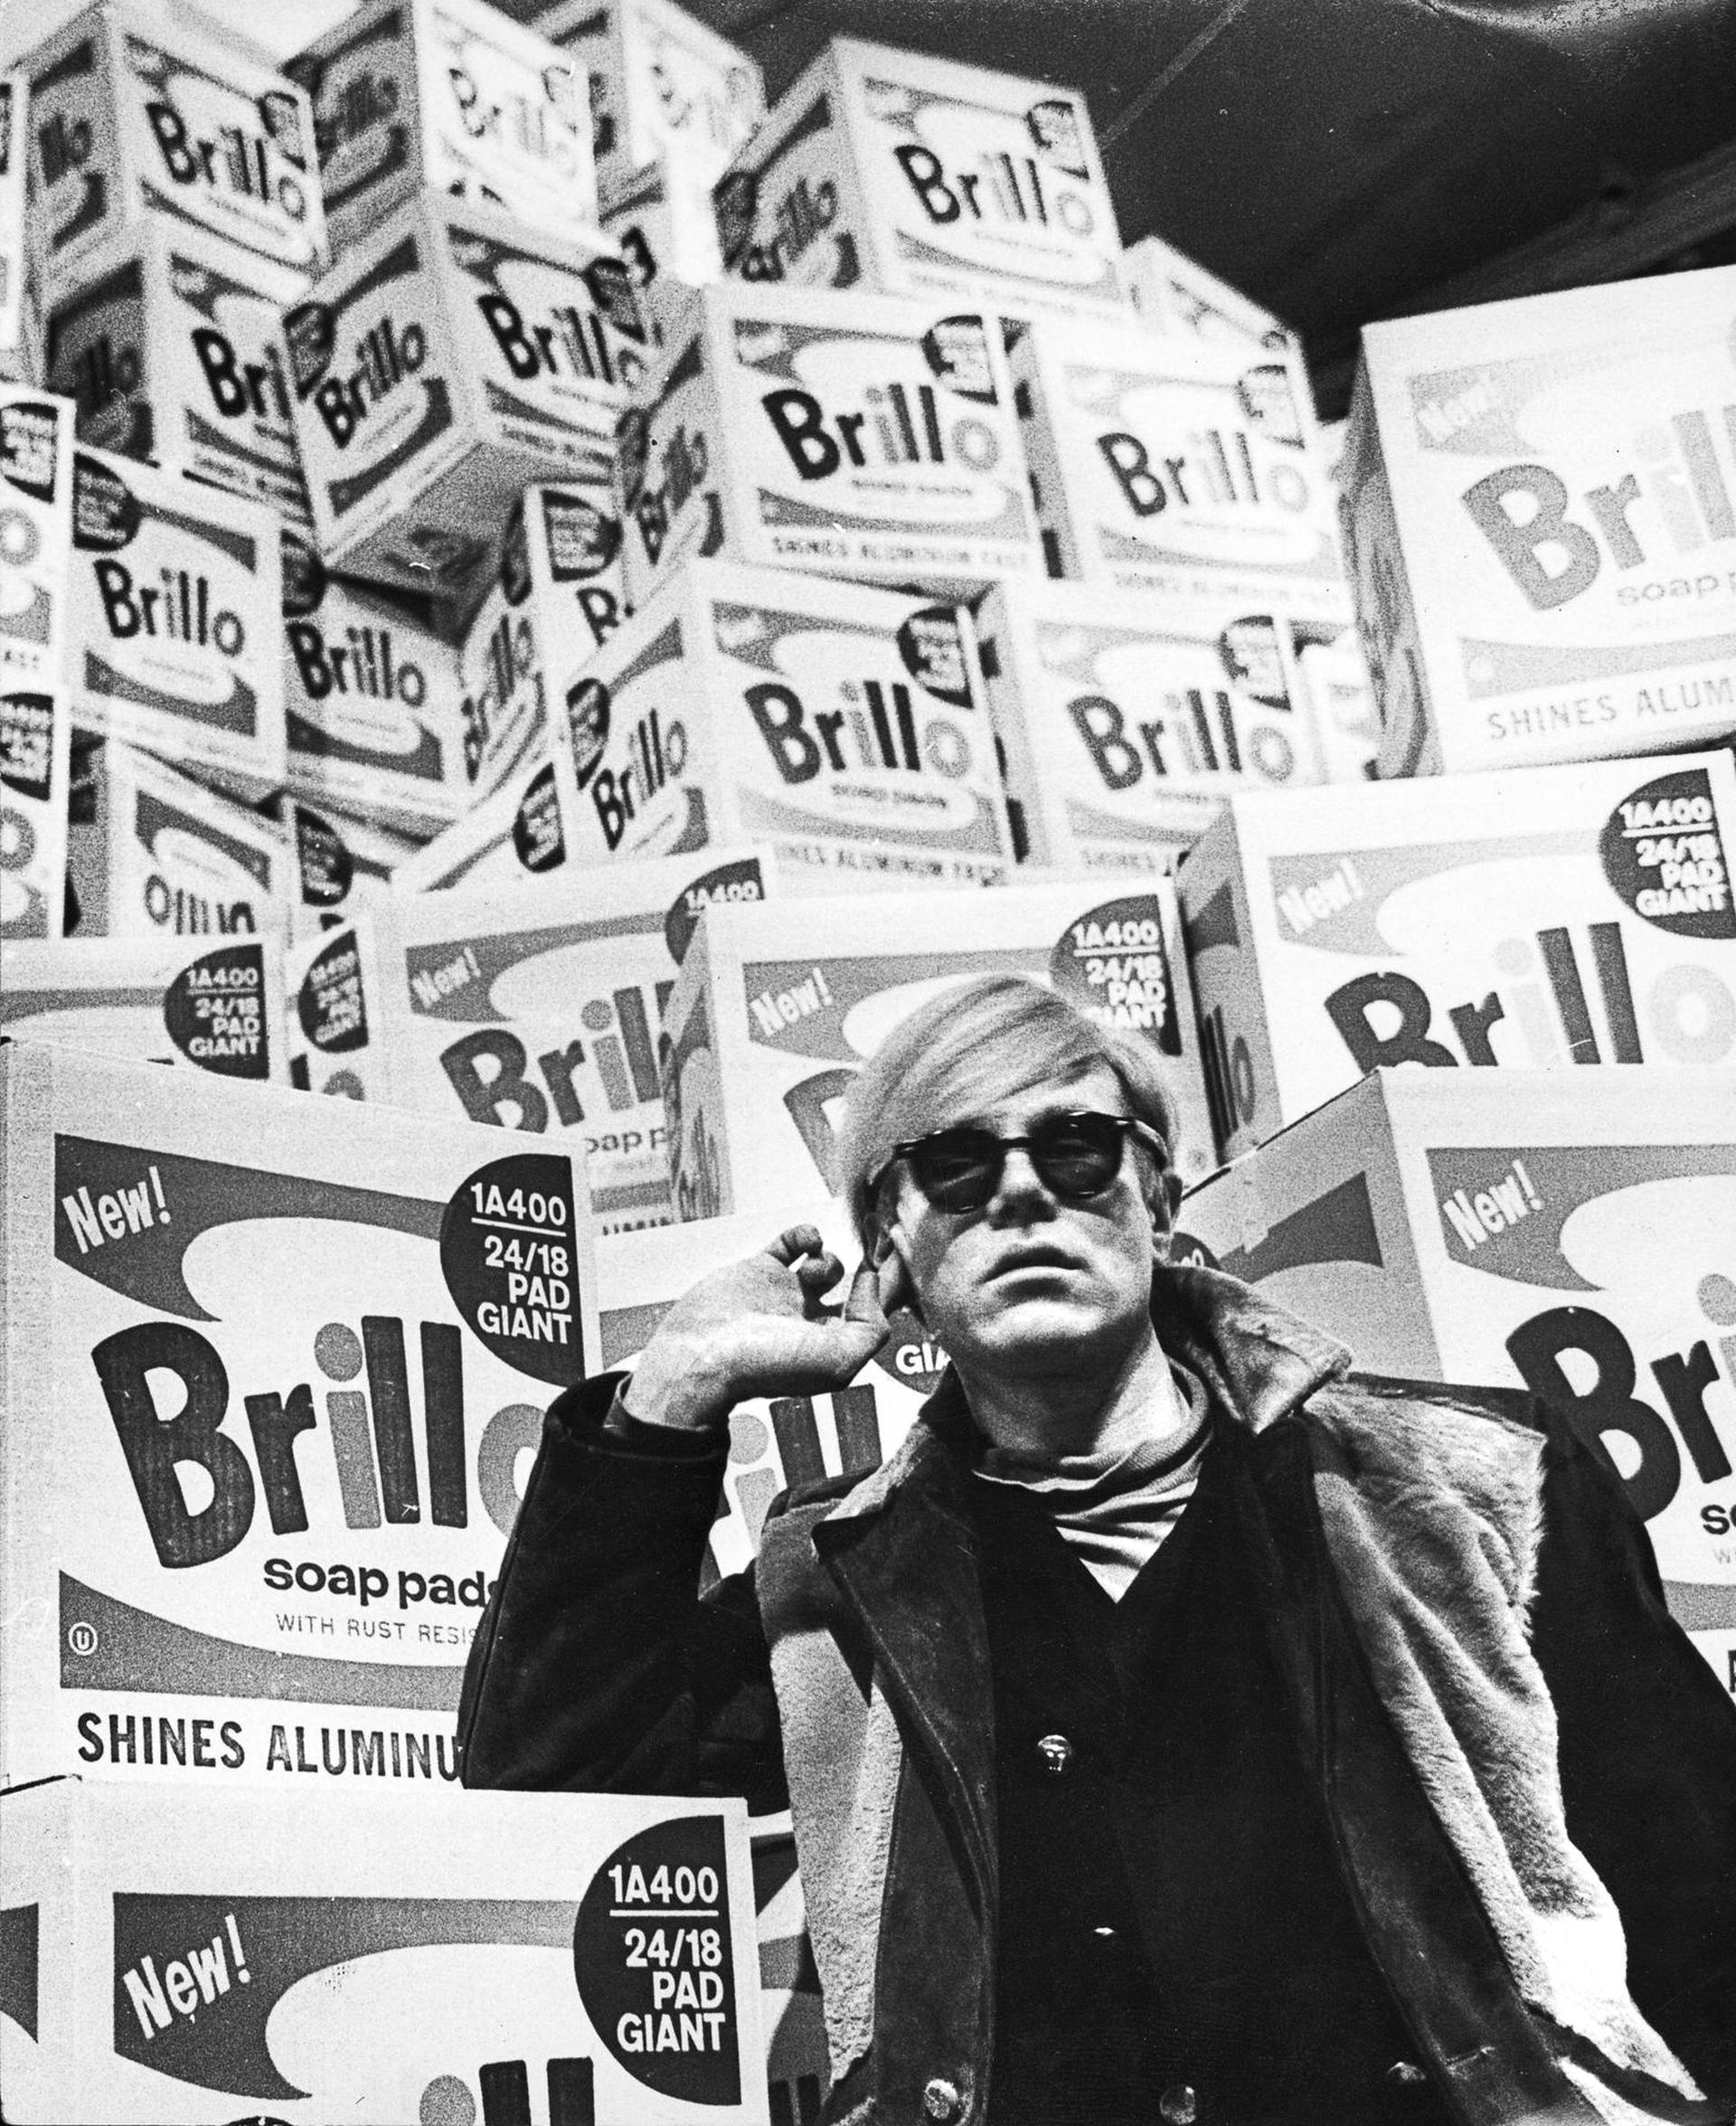 File:Andy-Warhol-Stockholm-1968.jpg - Wikimedia Commons